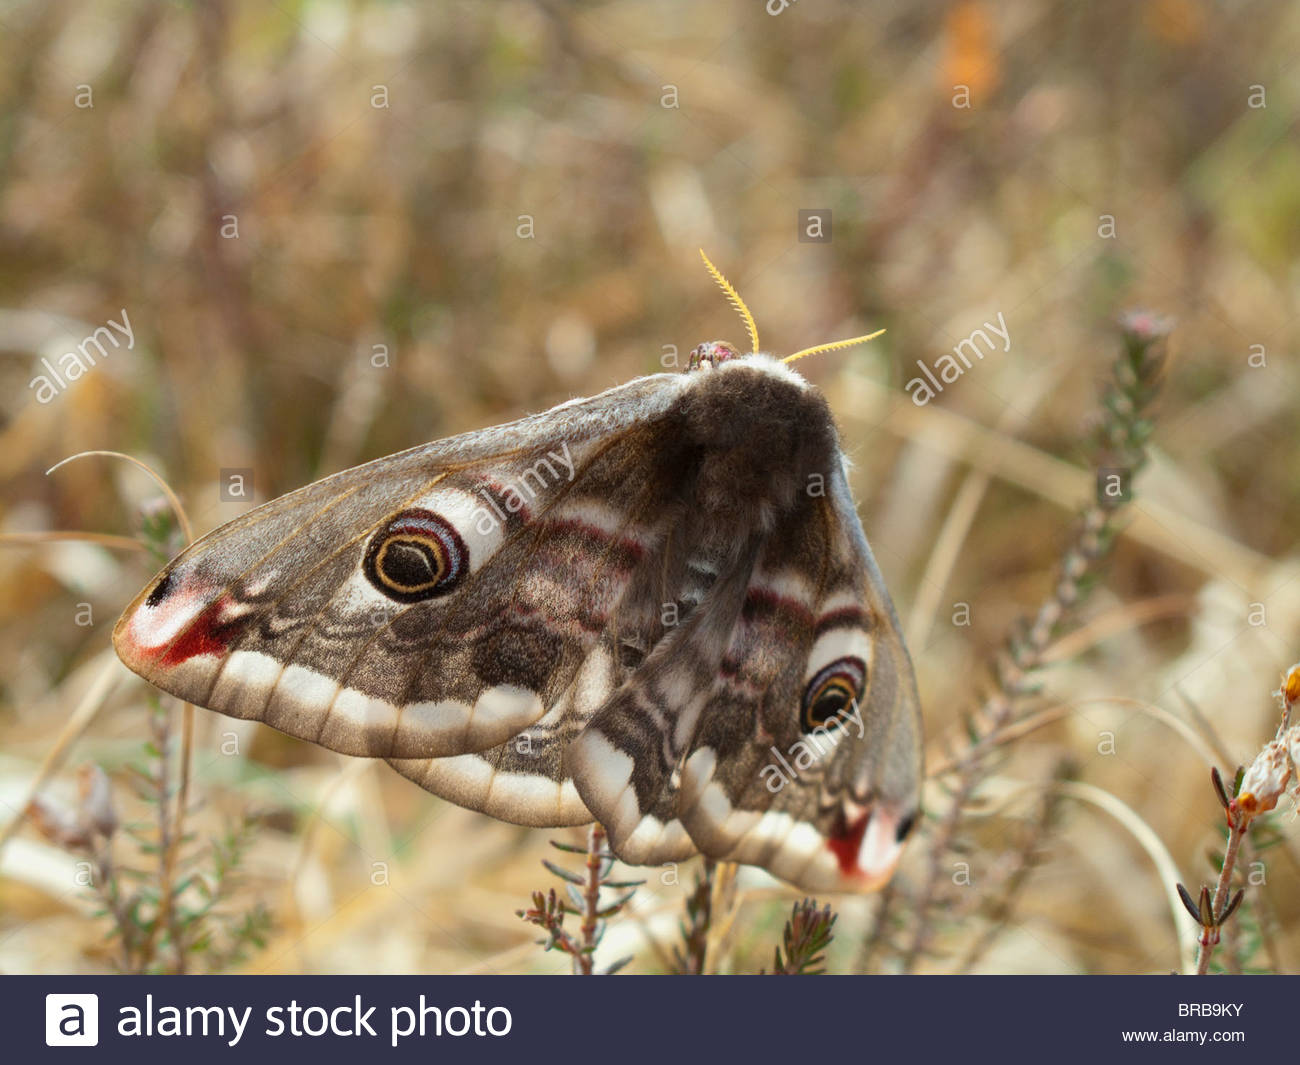 Close up of wings of moth - Stock Image